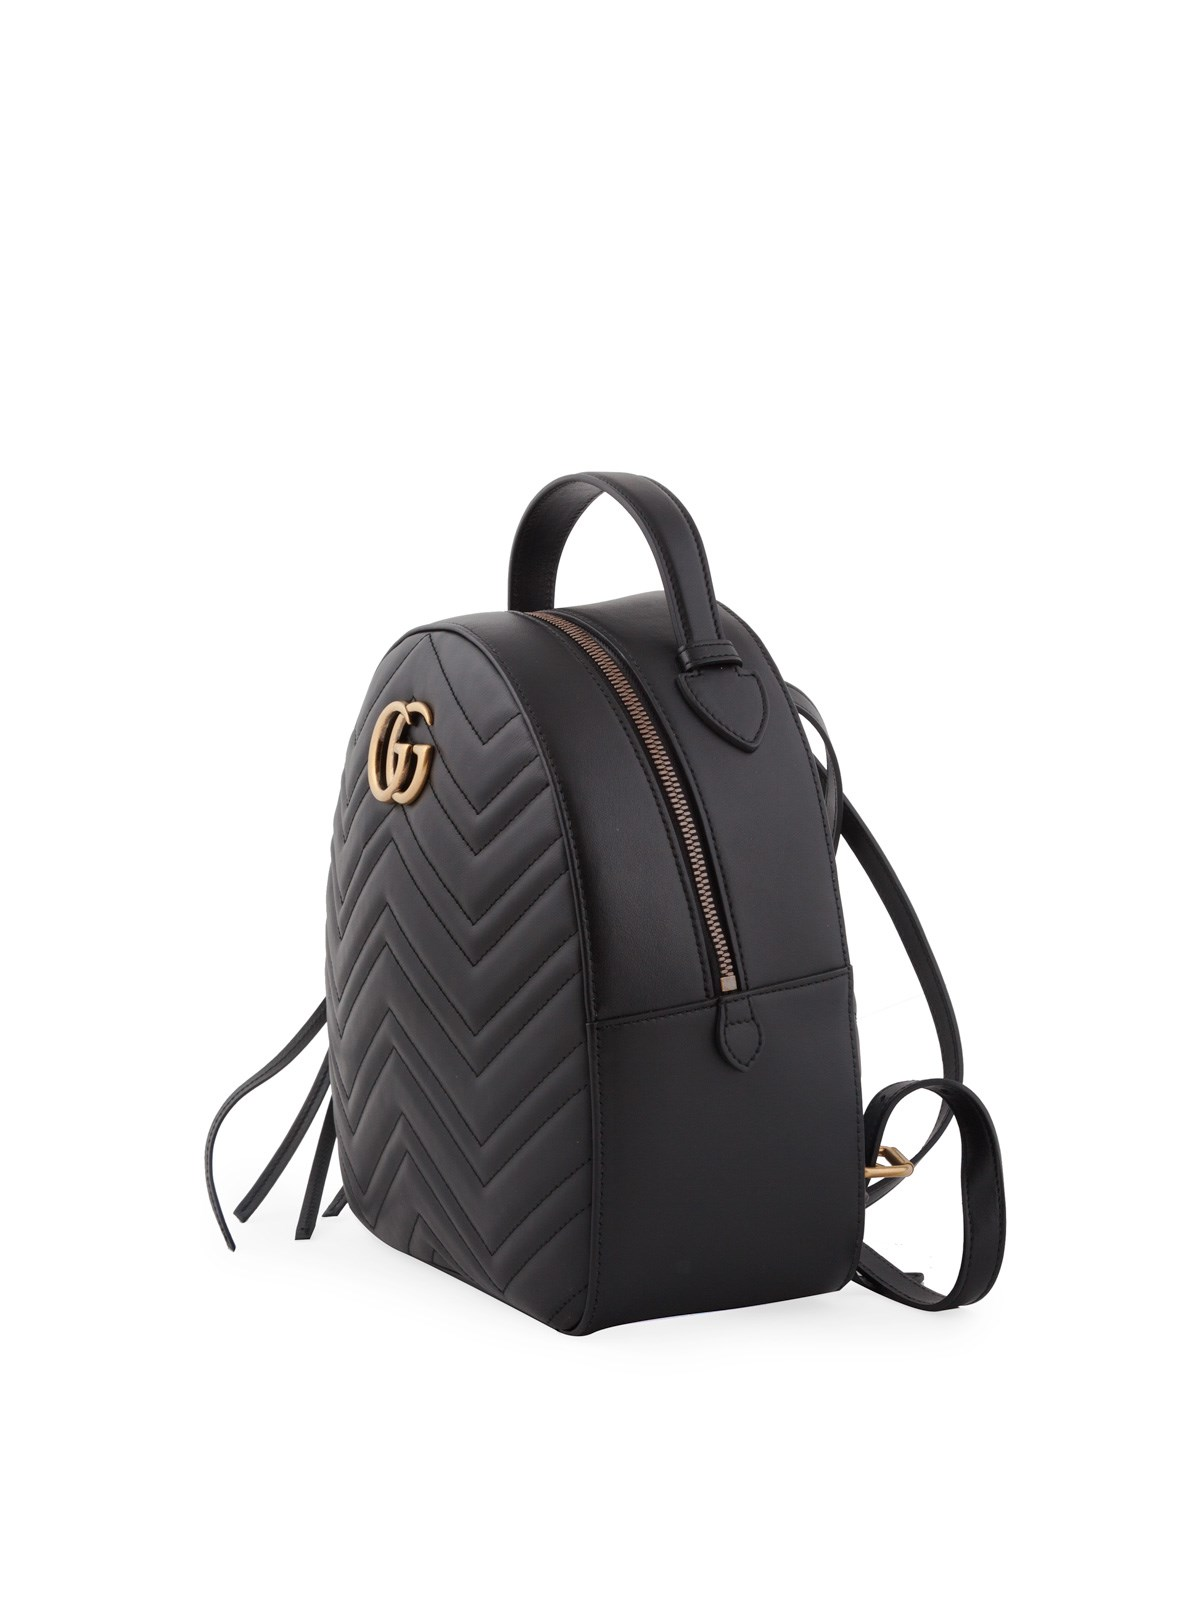 b71e287e552 gucci GG MARMONT QUILTED LEATHER BACKPACK available on montiboutique ...